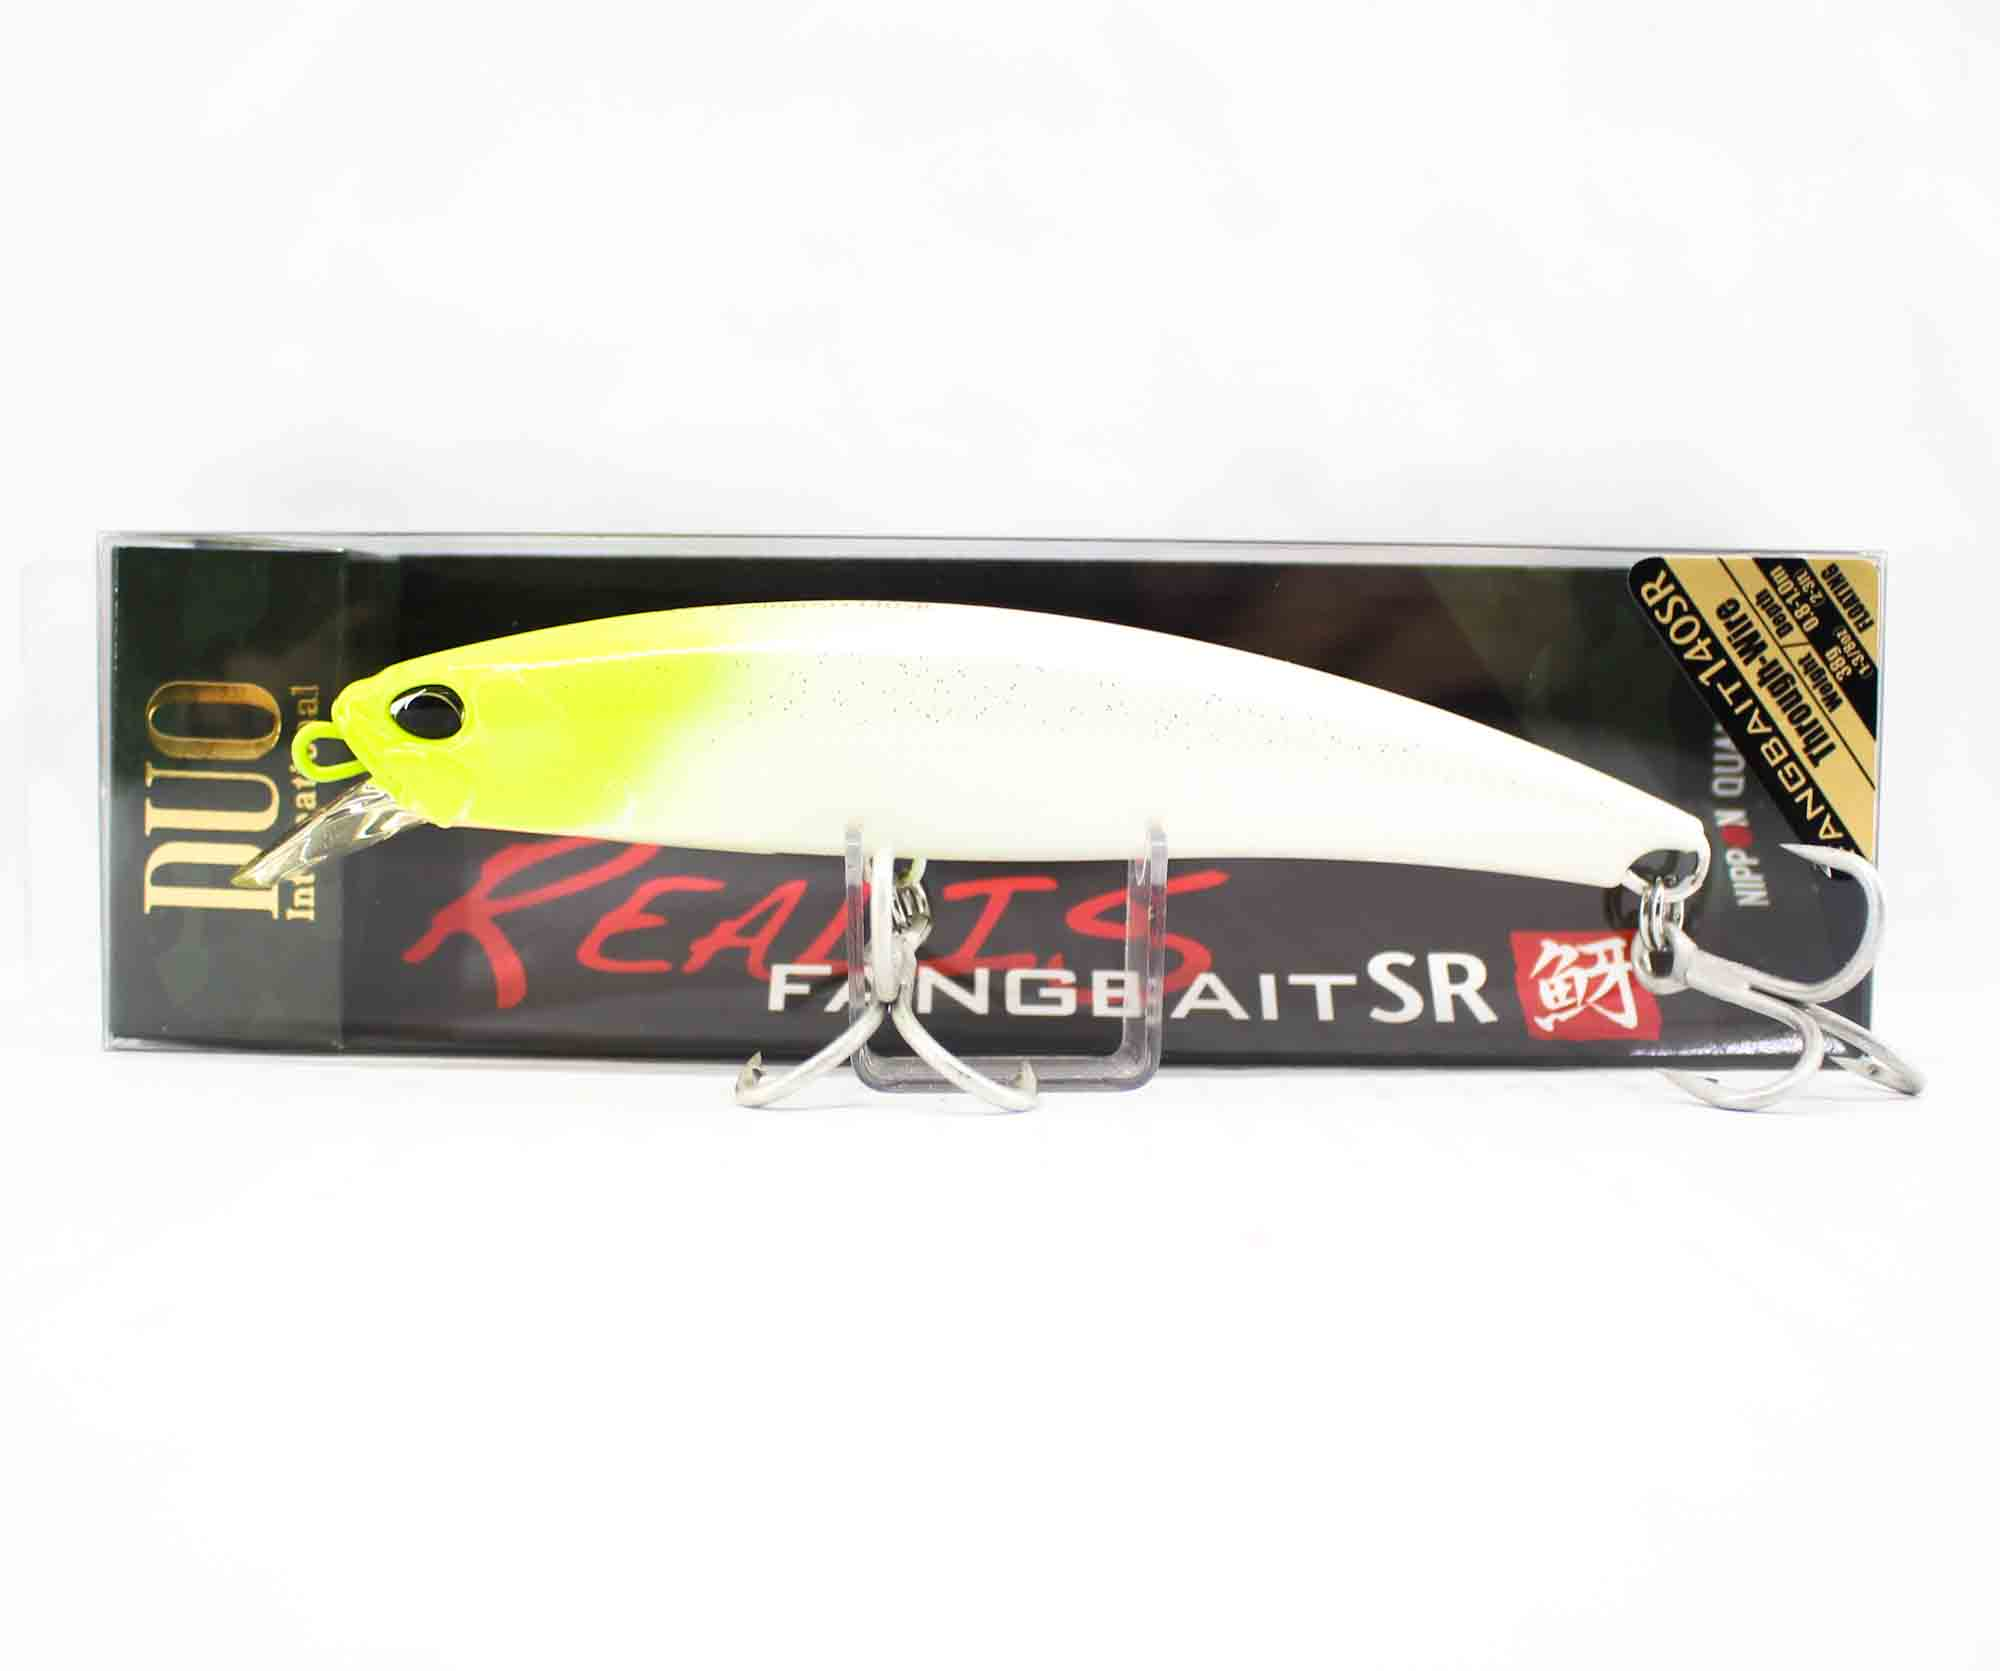 Duo Realis Fangbait 140SR Floating Lure ACC3302 (3731)